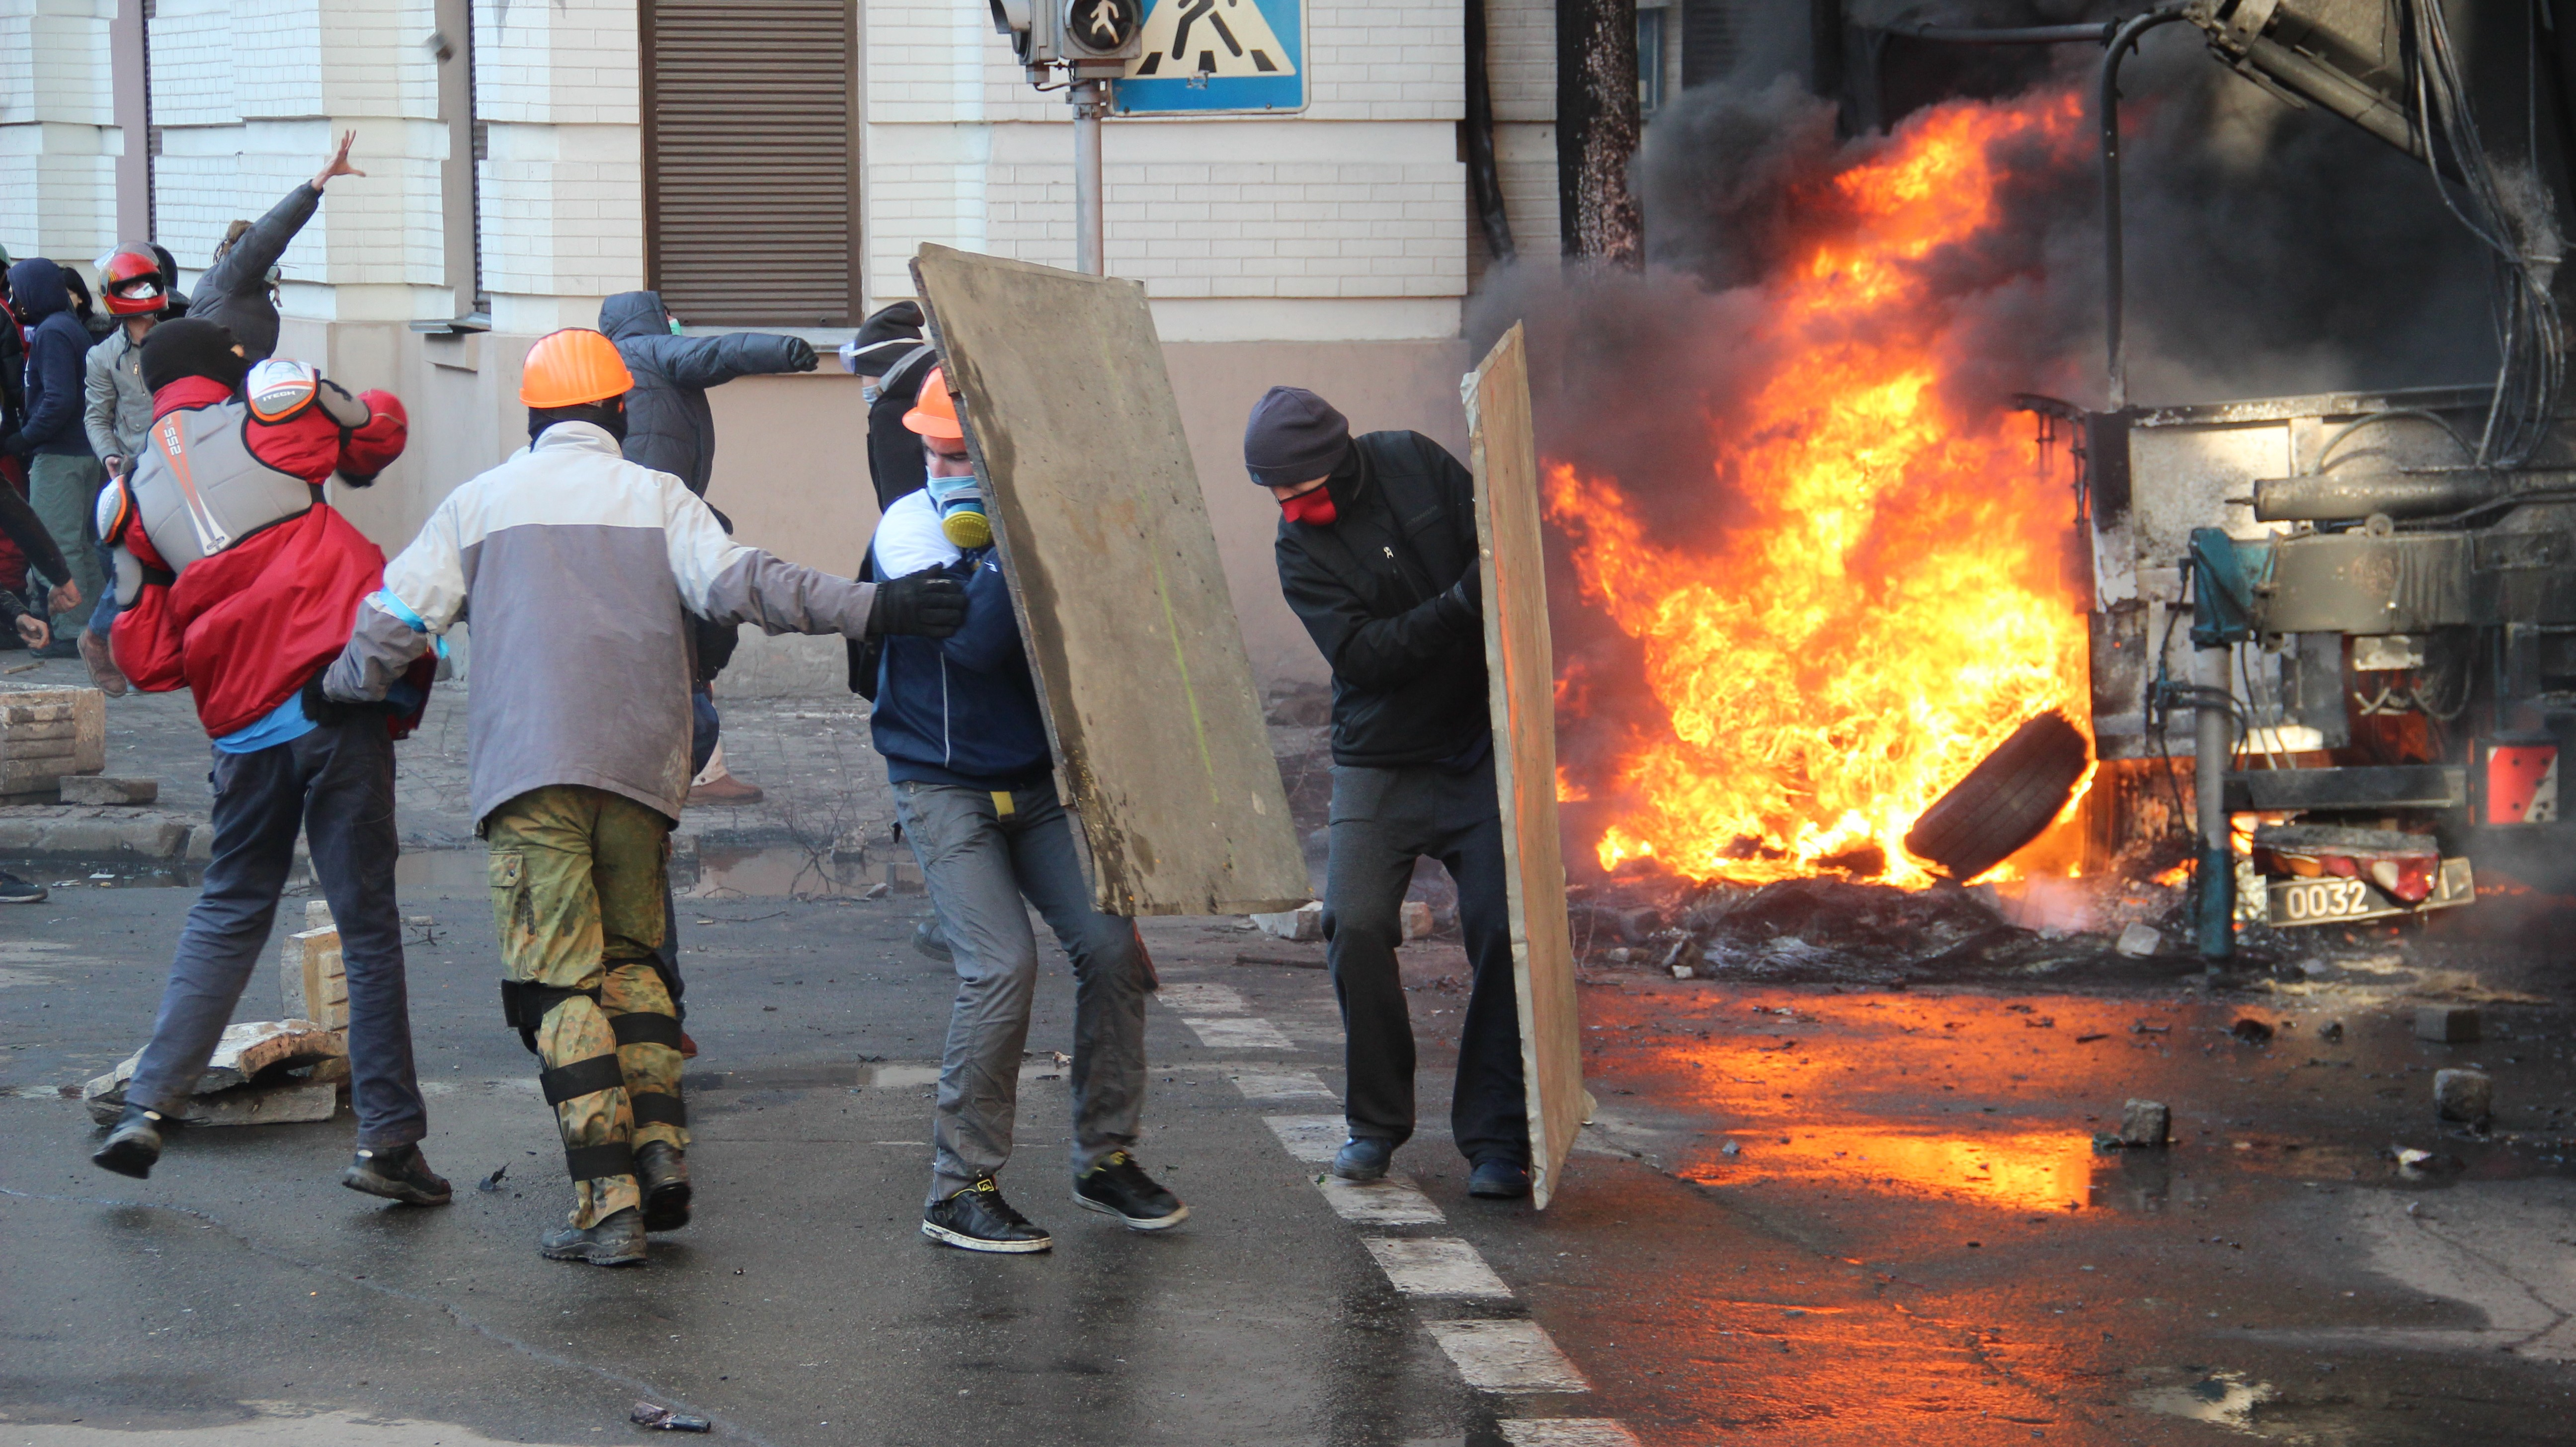 RFE/RL and VOA provide unstinting and unique reporting on violence in Ukraine